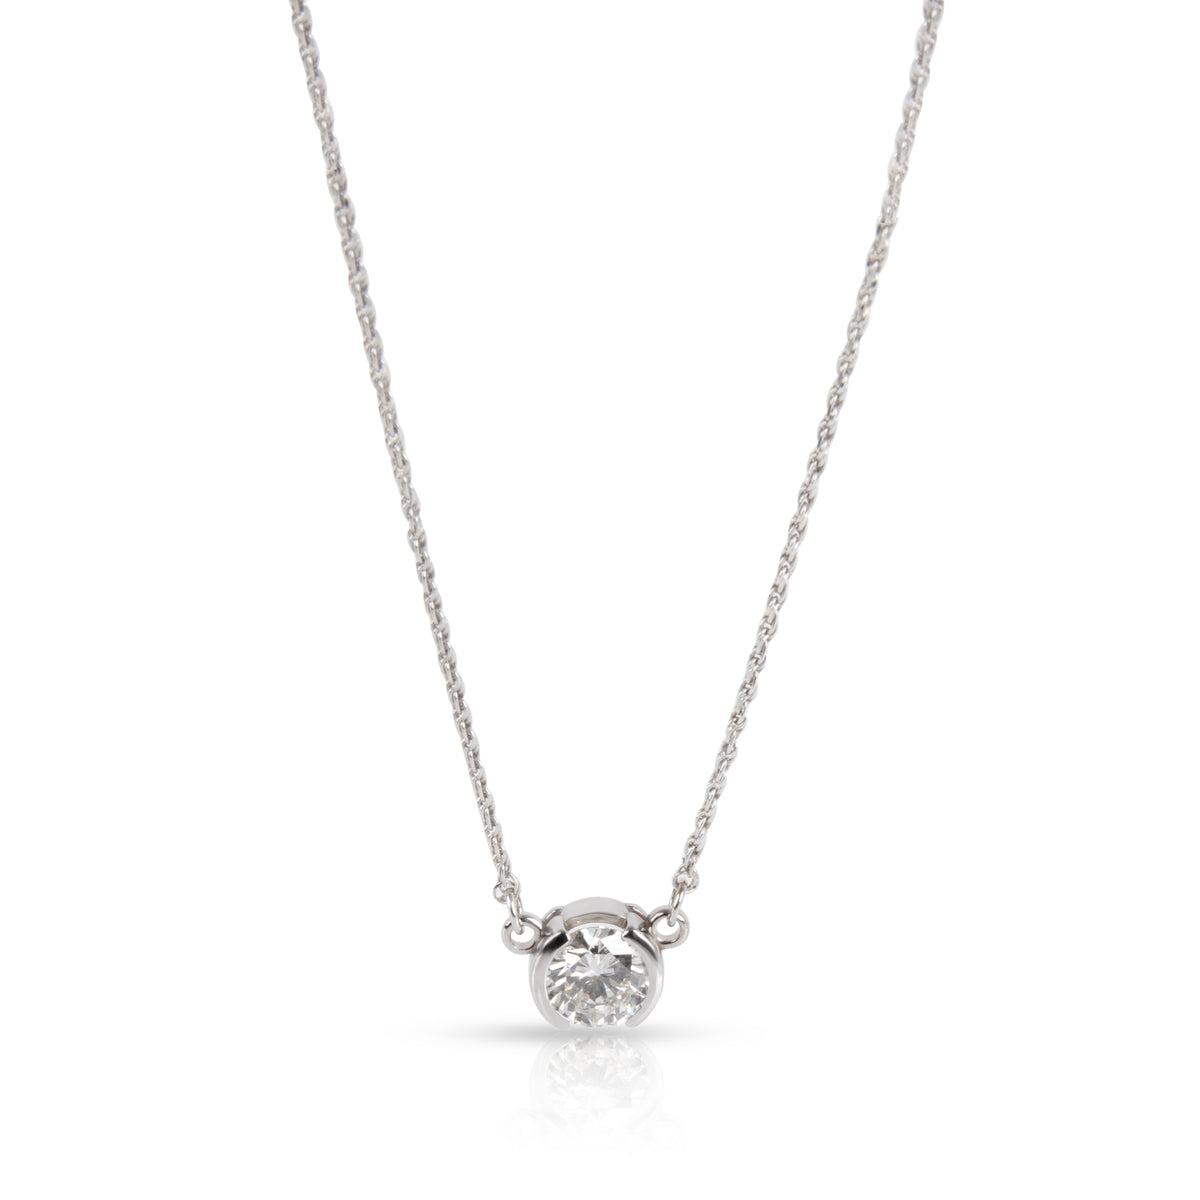 Bezel Set Solitaire Diamond Necklace in 14K White Gold EGL USA G SI2 1.01 CTW